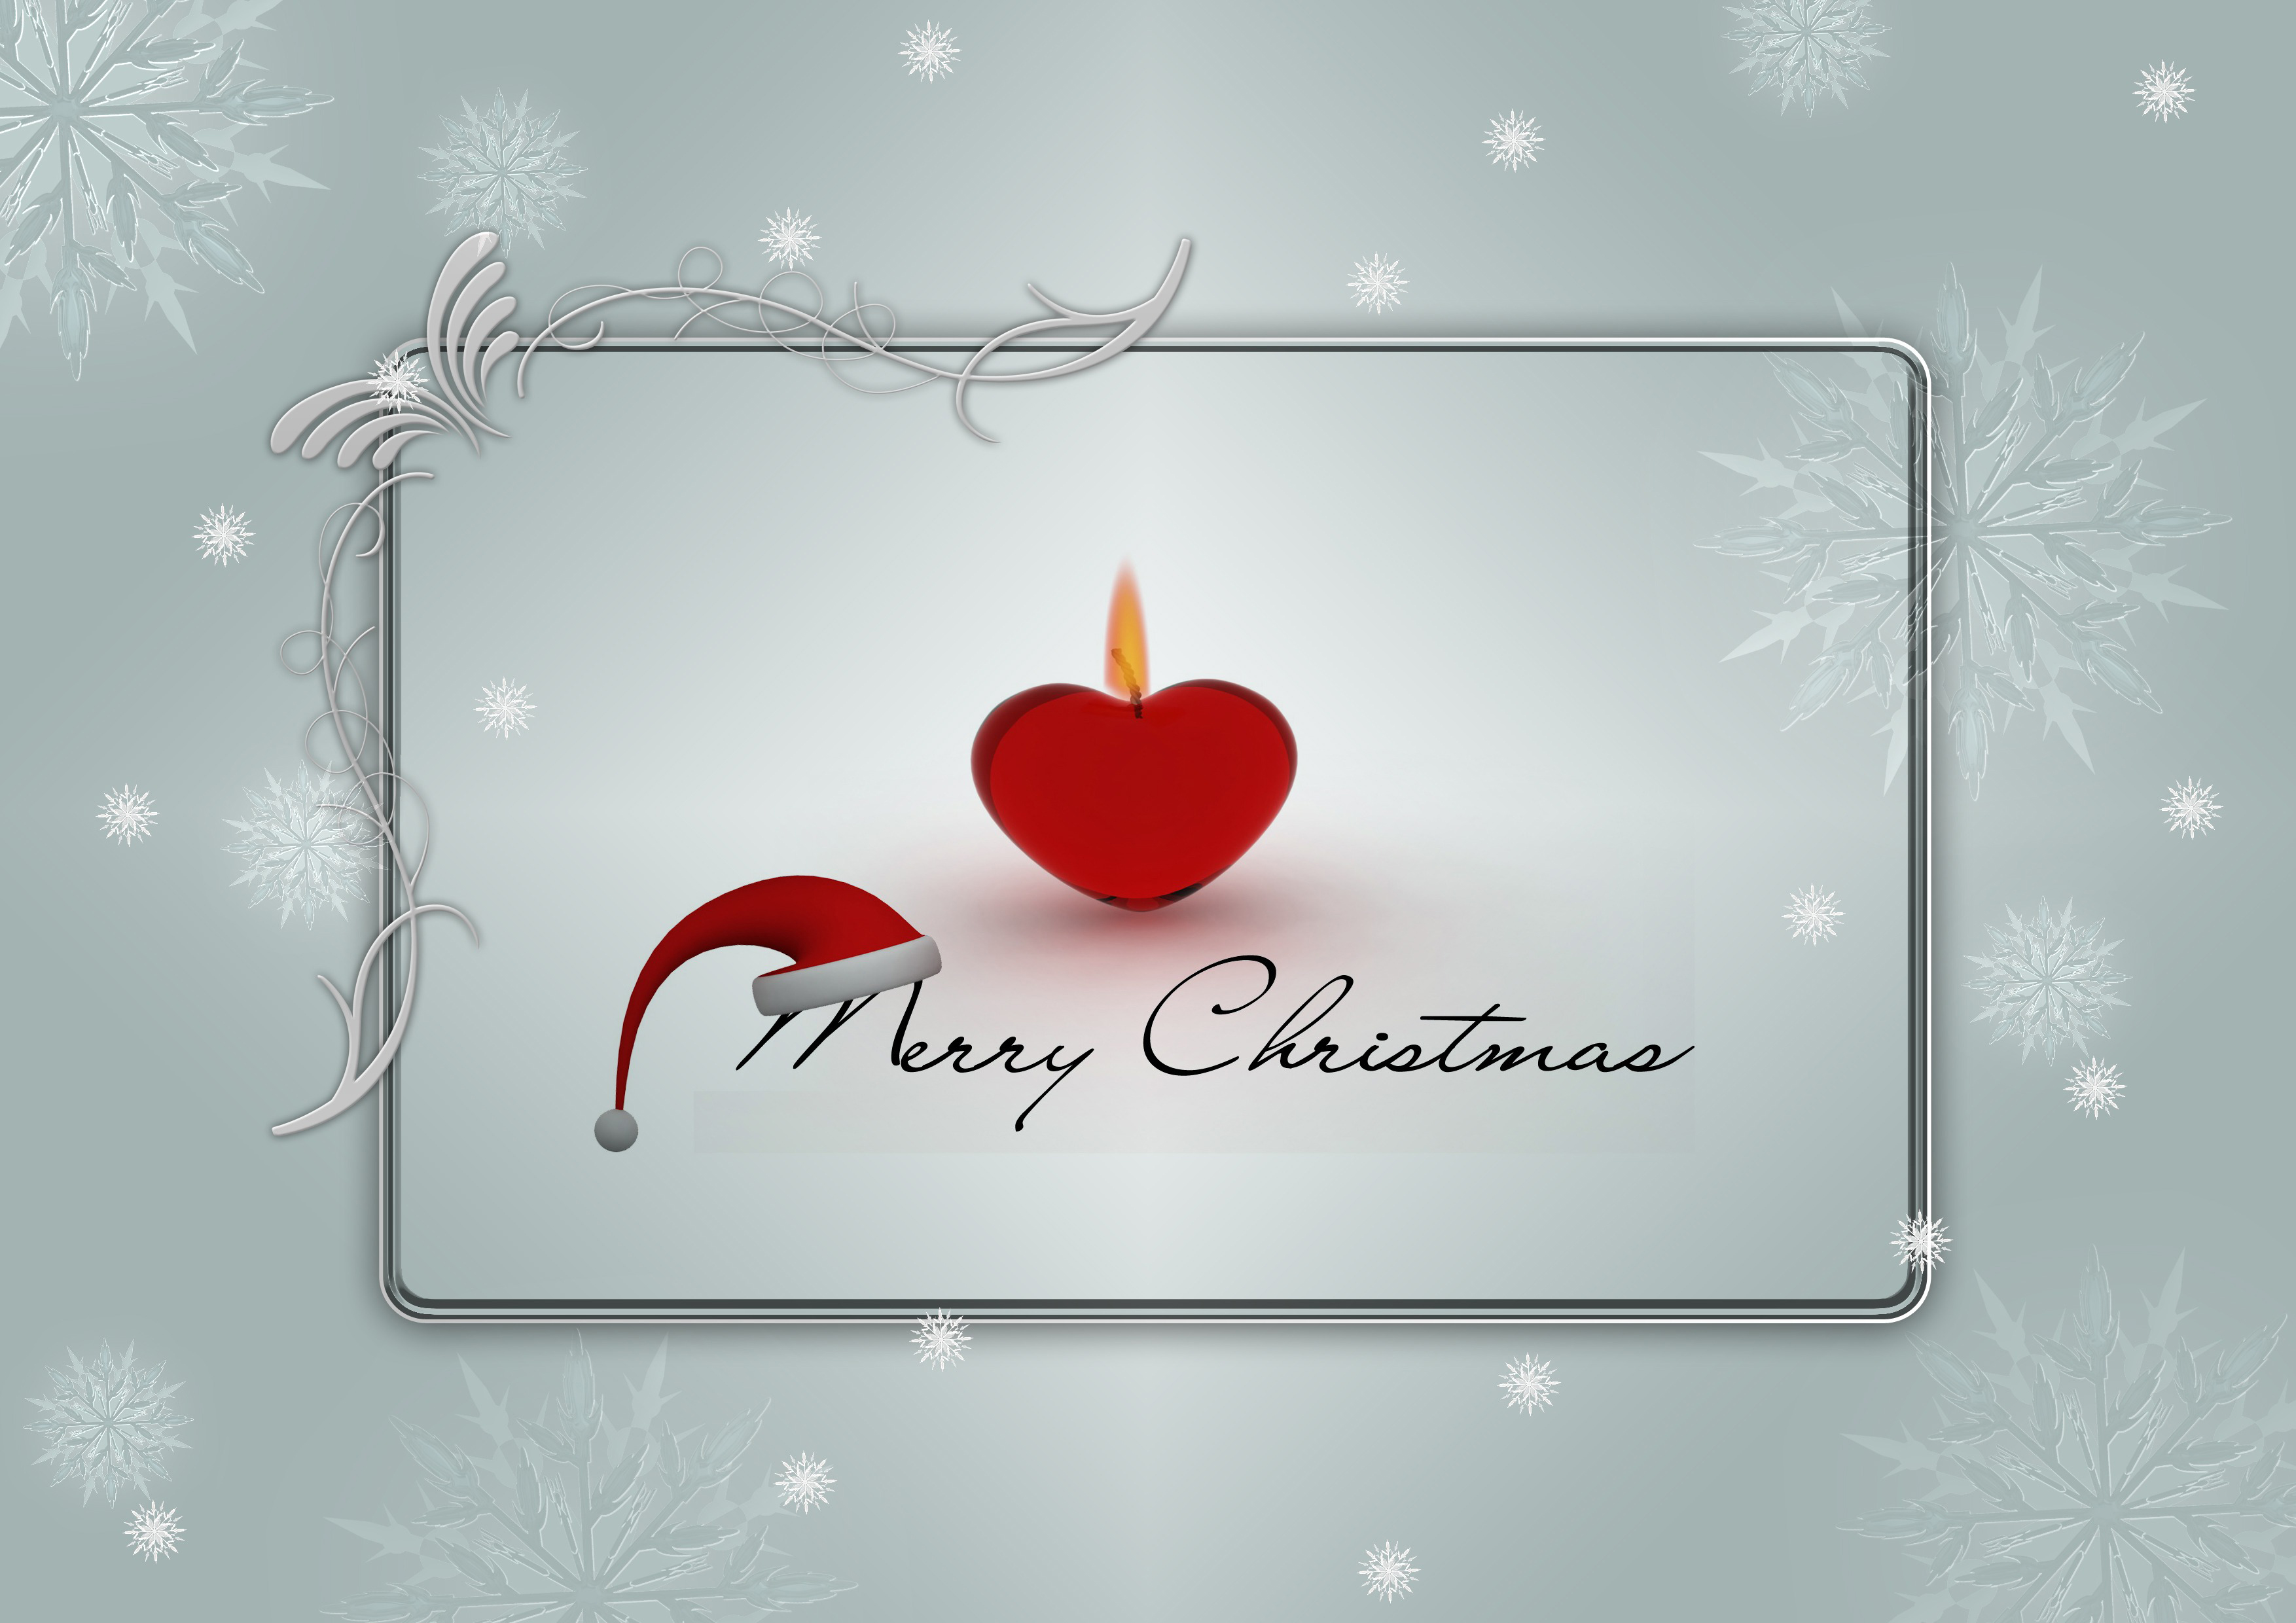 Christmas greeting, winter, map, candle, advent